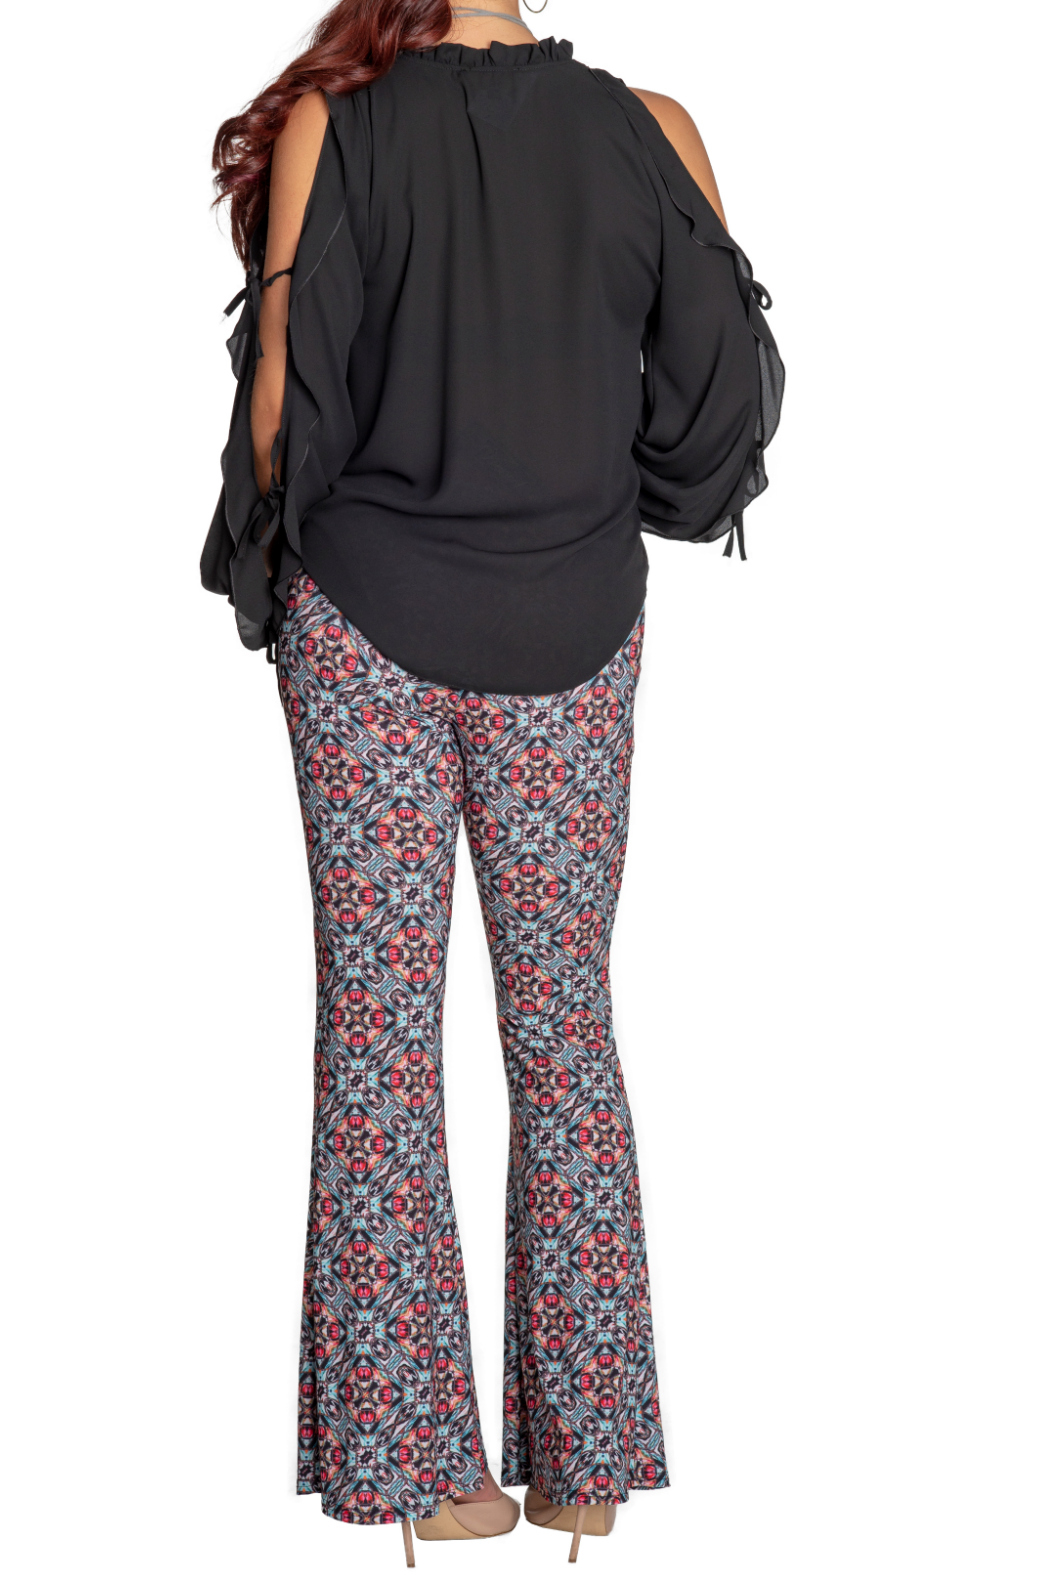 Viereck Serrano Print Flare Pull-on Pant - Side Cropped Image